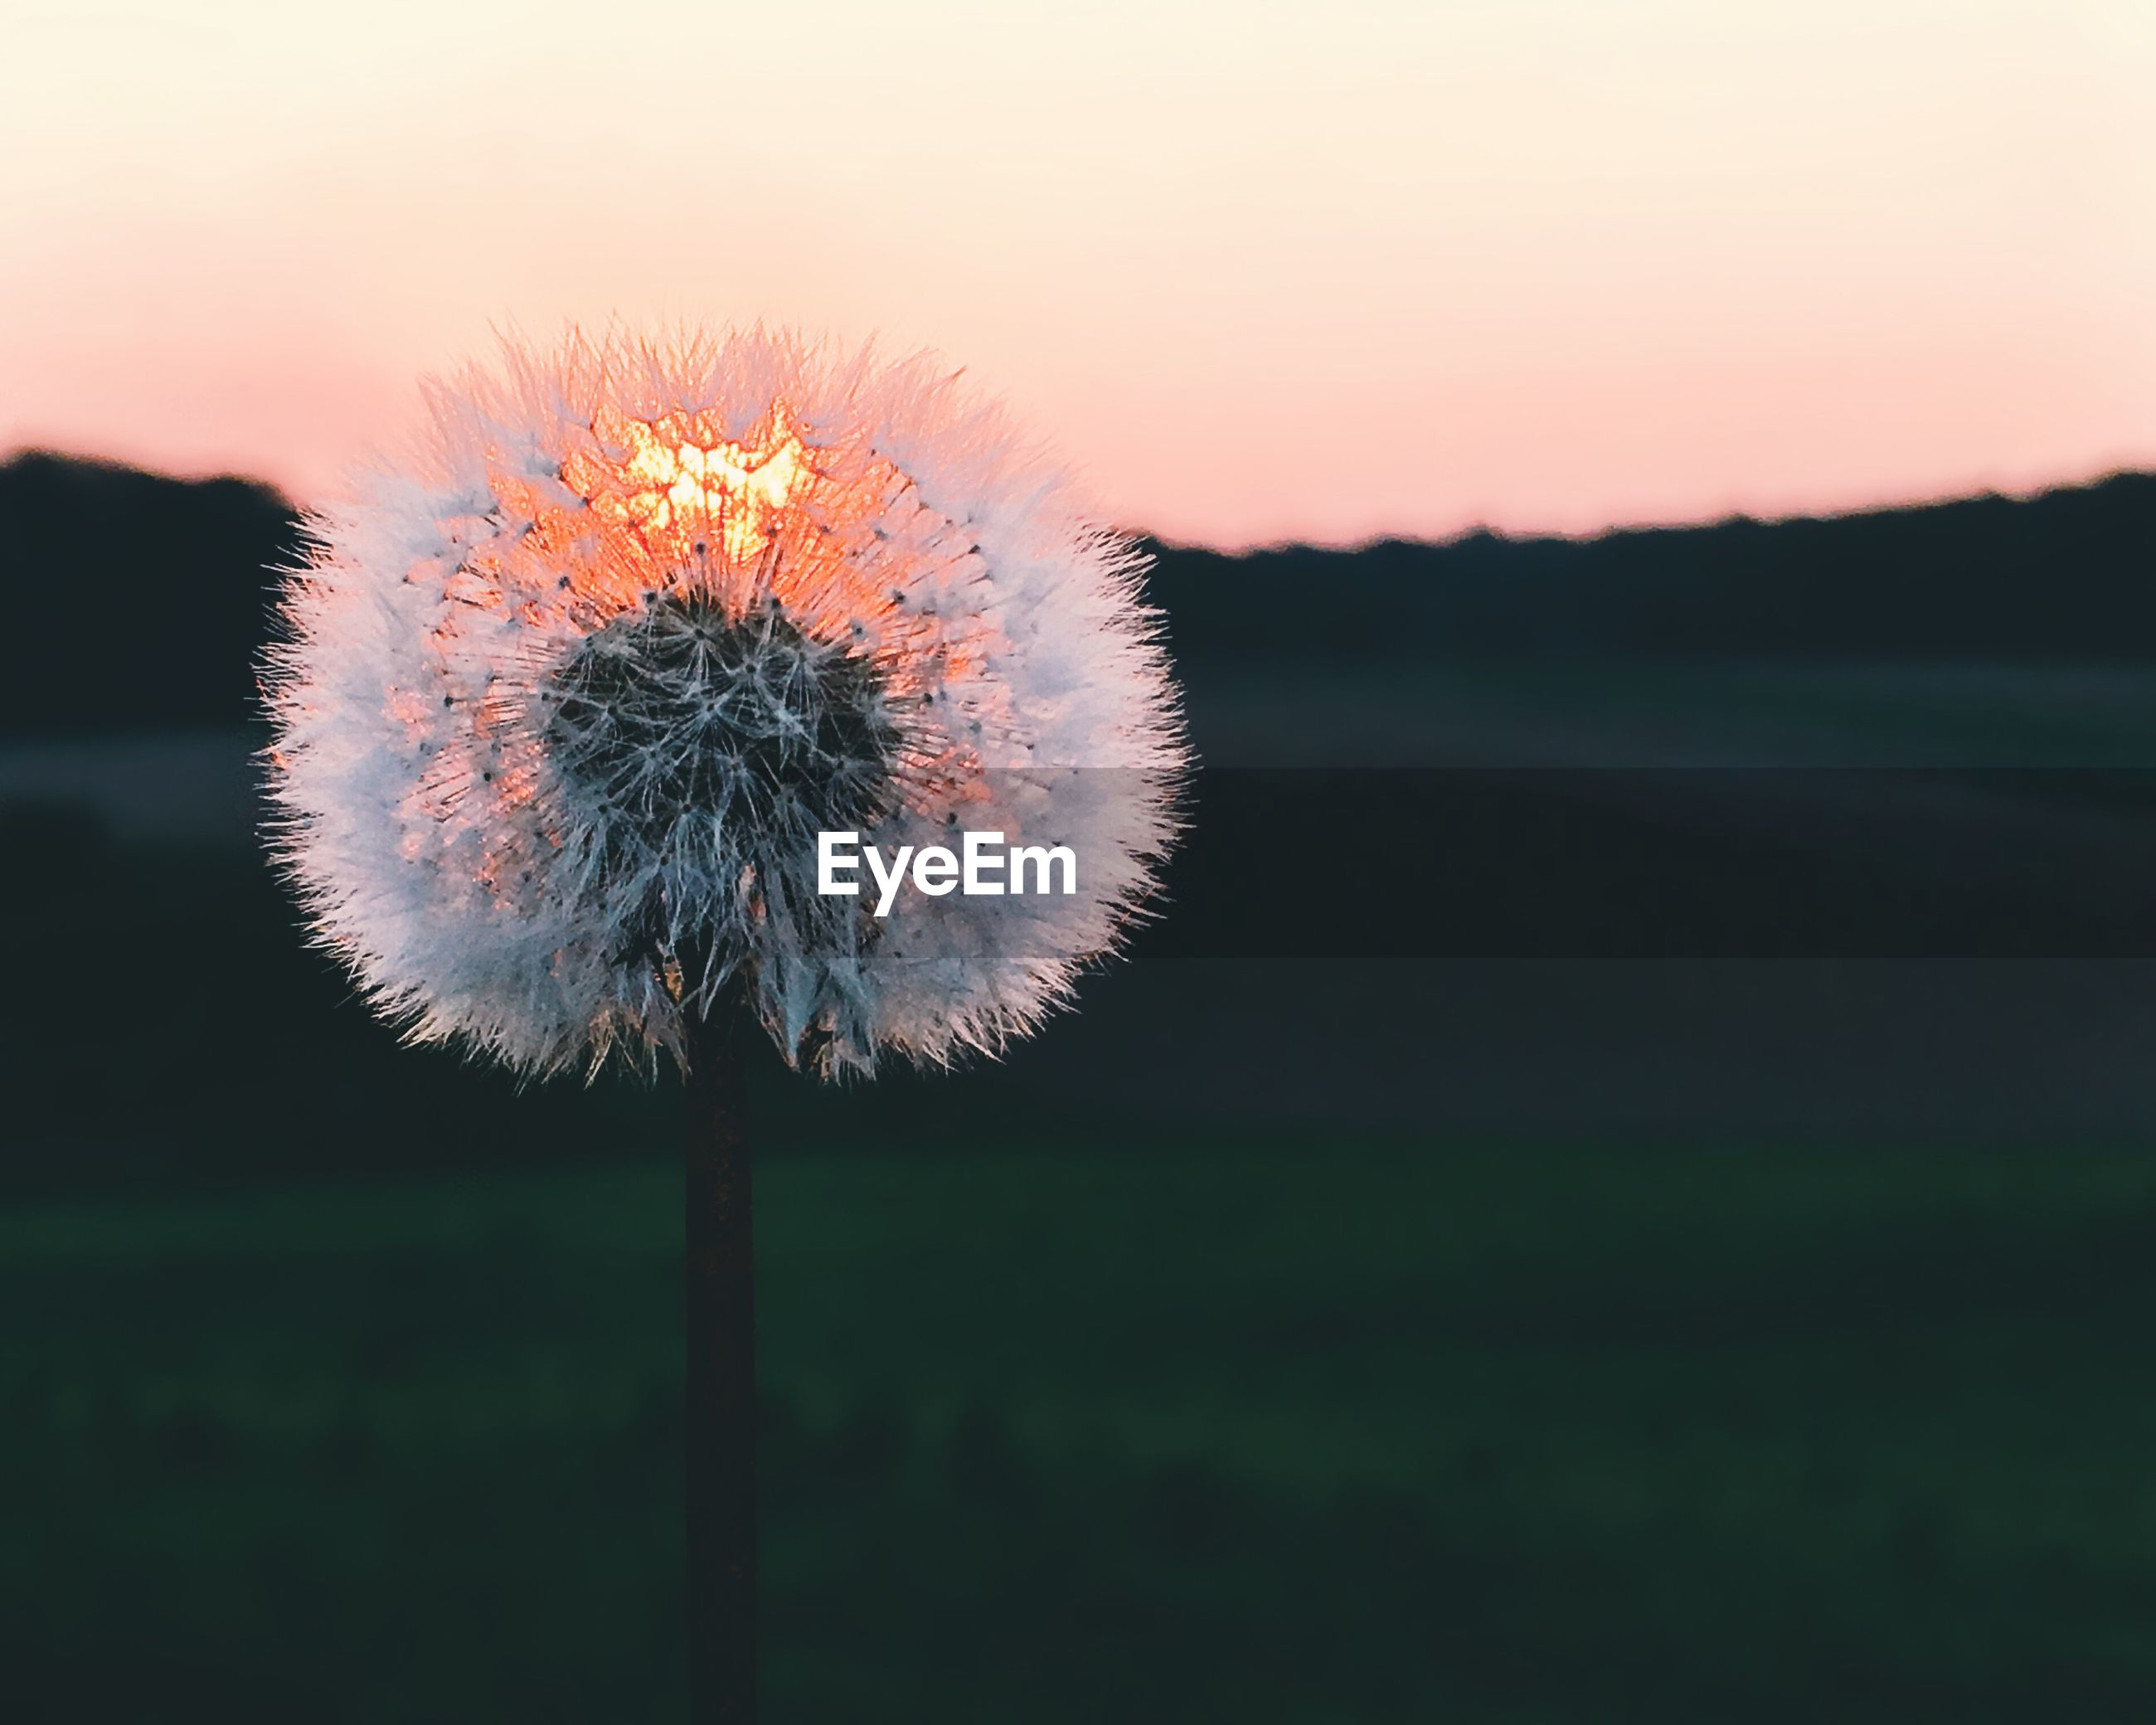 CLOSE-UP OF DANDELION GROWING ON FIELD AGAINST SKY